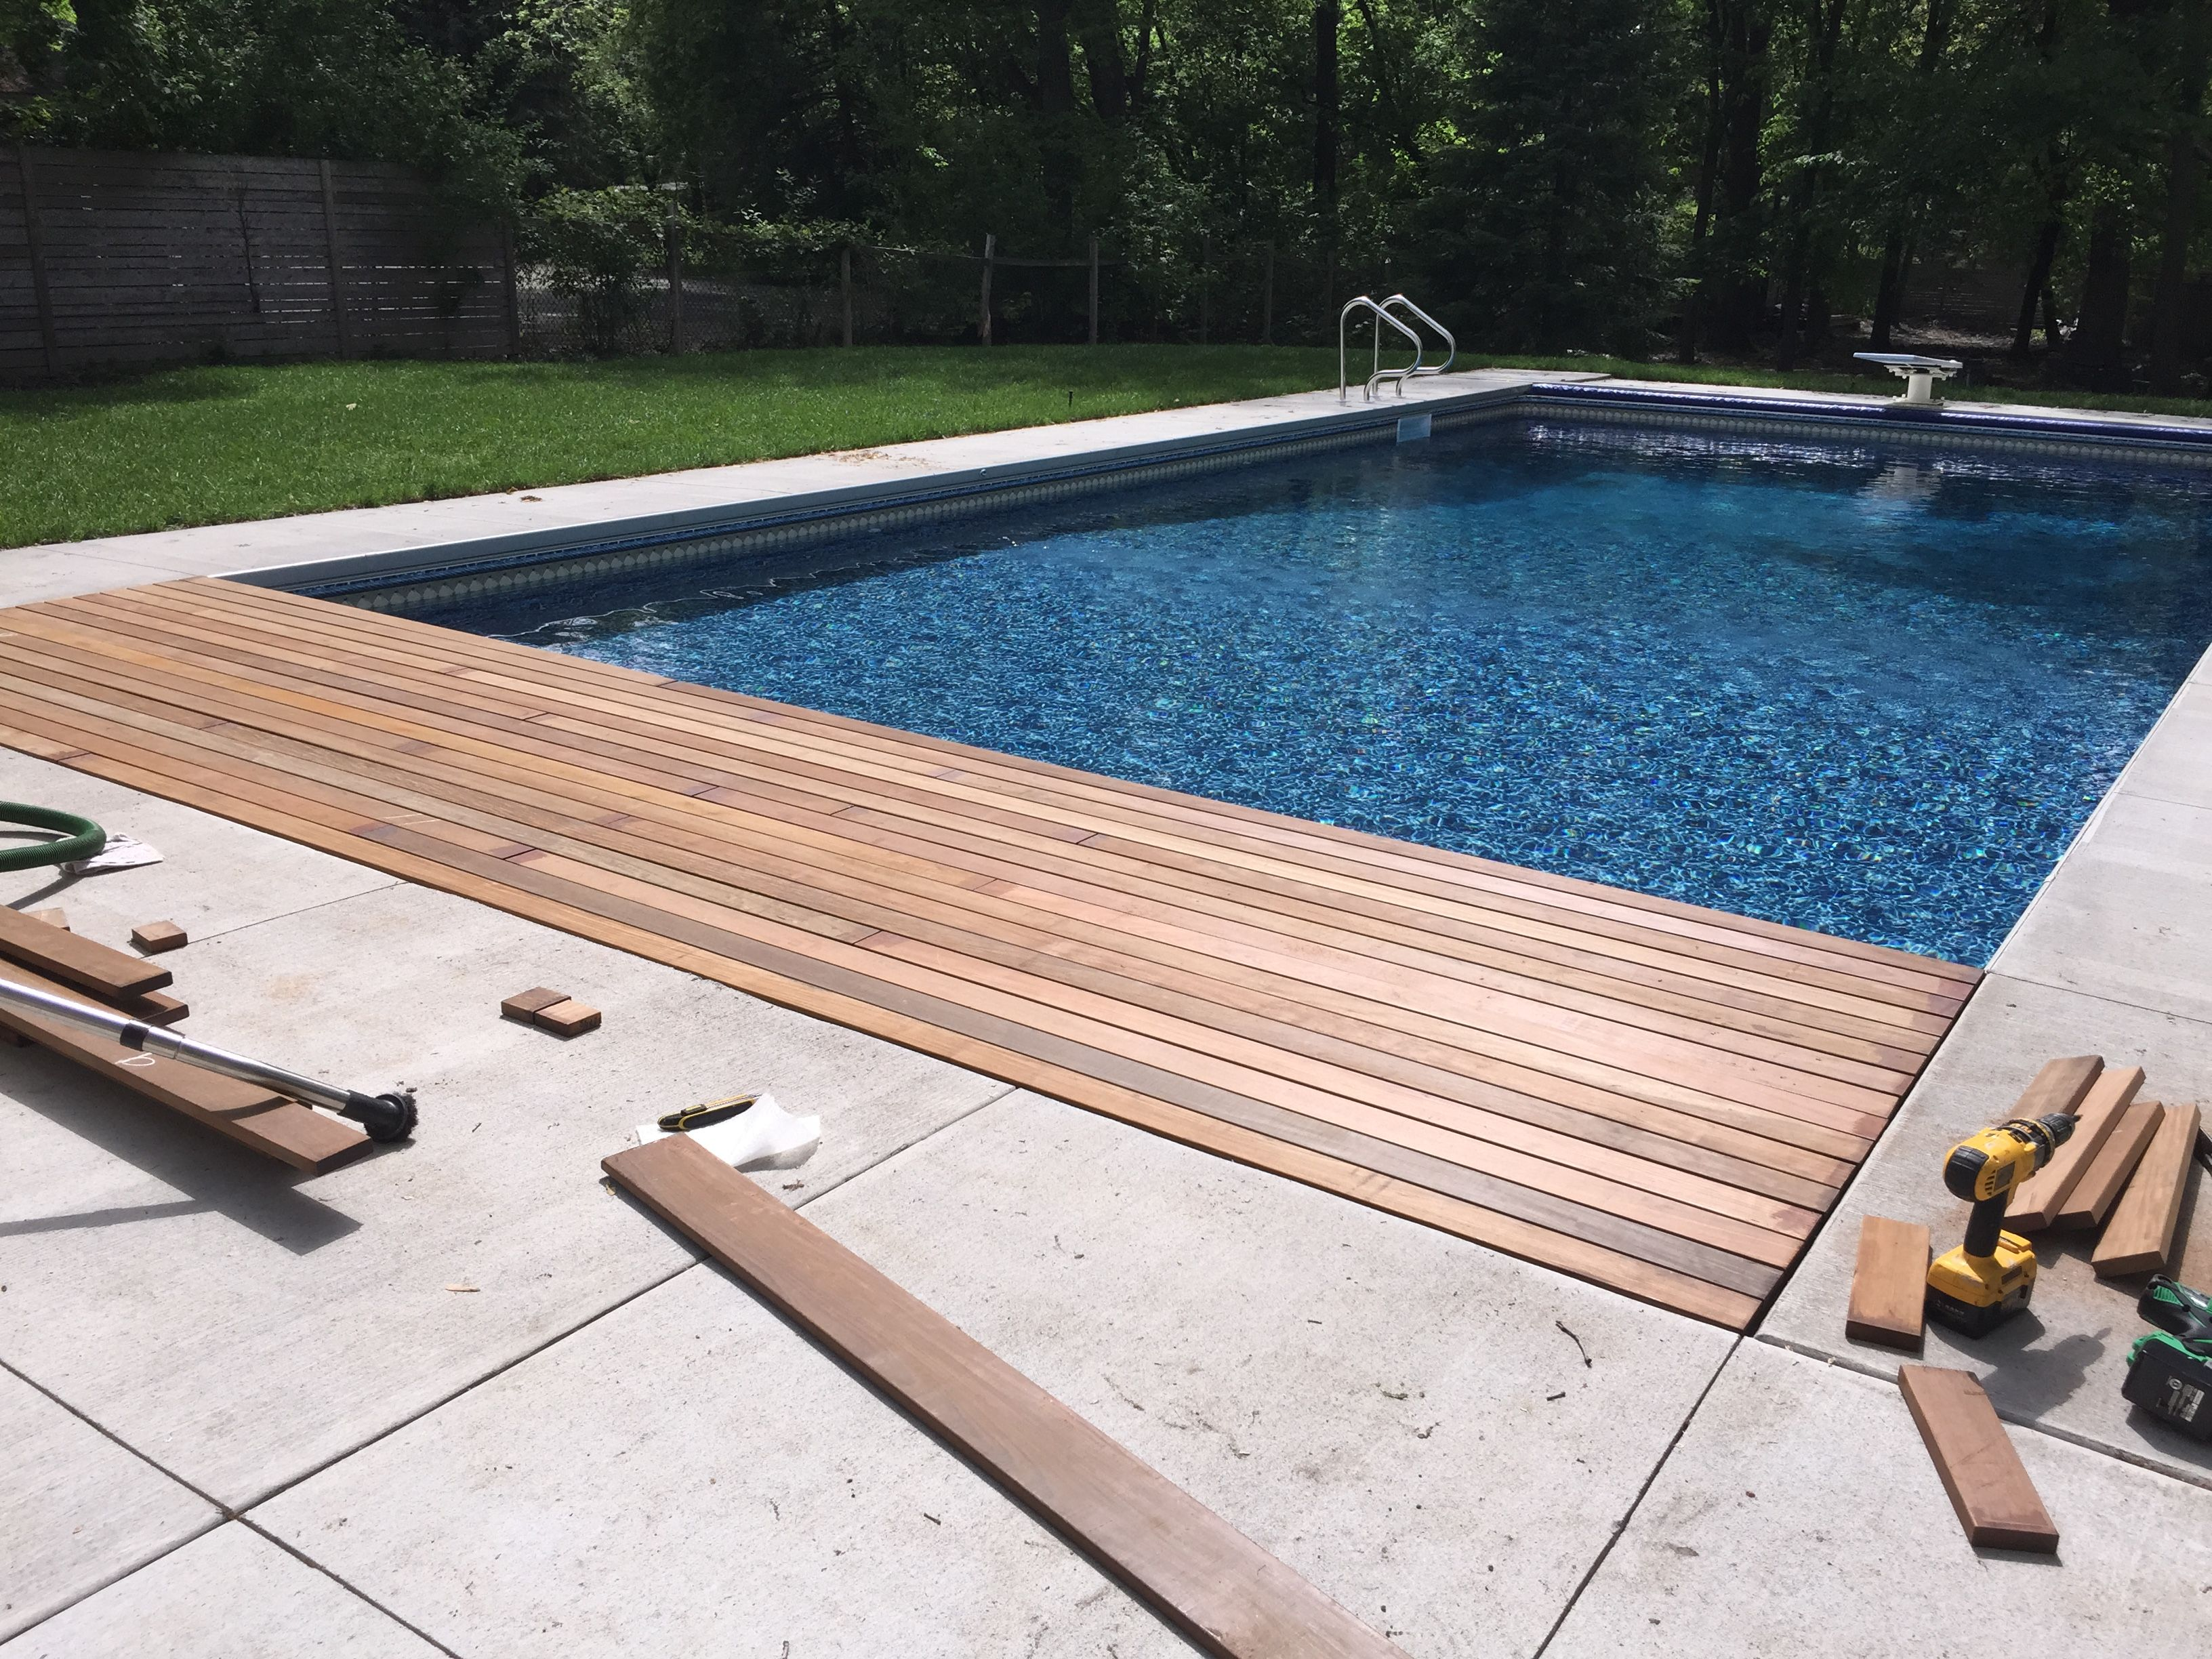 Pin By Dustin Cutler On New Pool Design And Project Concrete Pool Wood Pool Deck Travertine Pool Decking